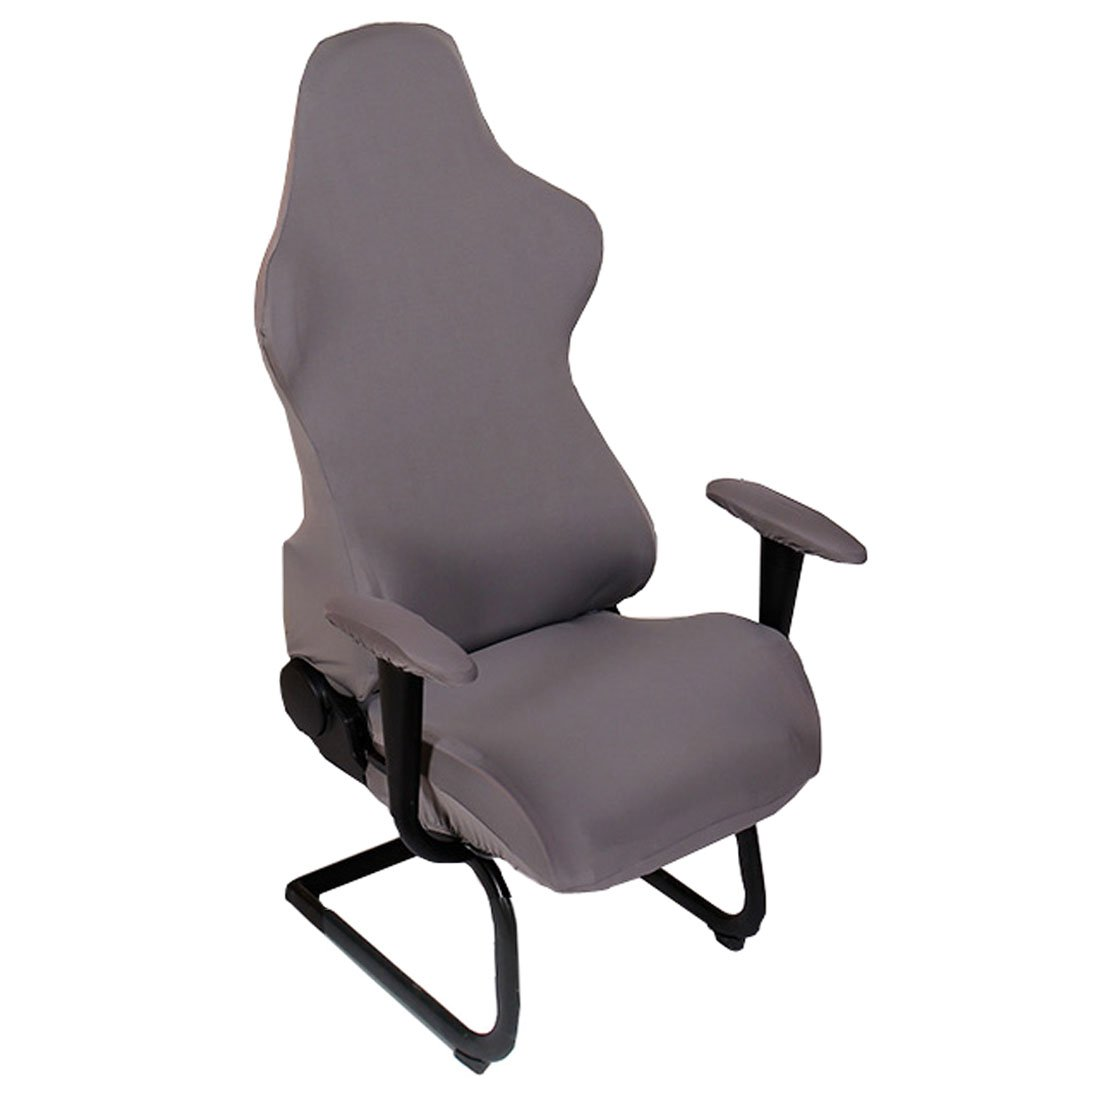 Office Computer Game Chair Cover Armchair Elastic Stretch Swivel Seat Gaming Chair Protector Slipcover (Gray)